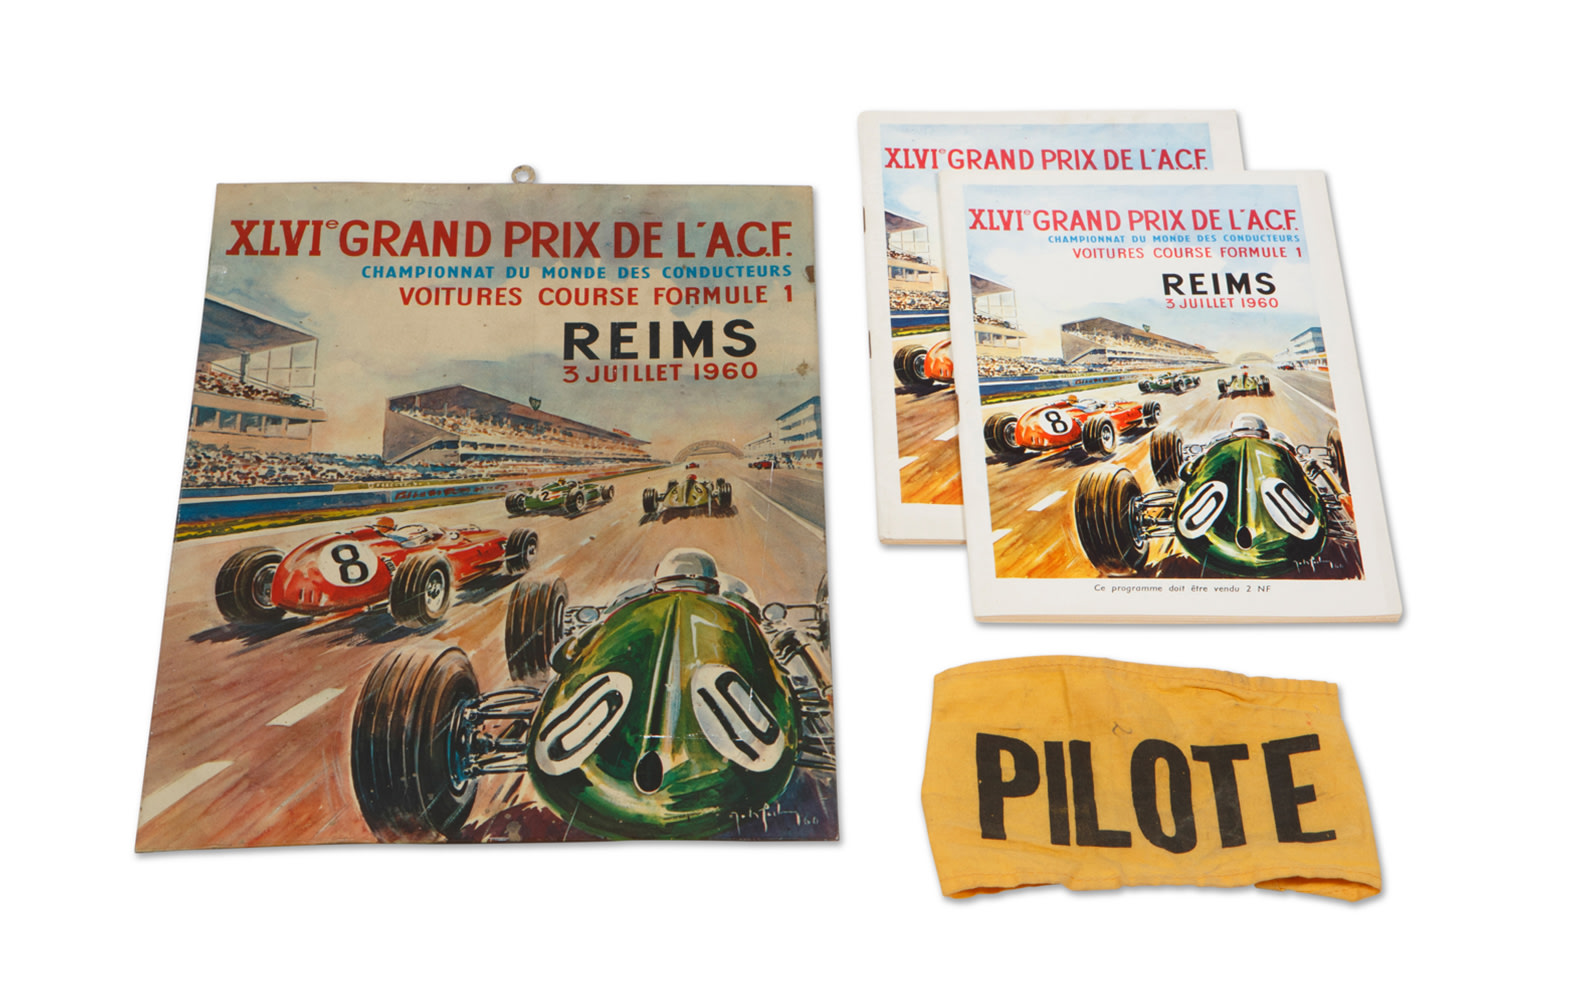 1960 French Grand Prix at Reims Official Race Programs, Driver Armband, and Metal Sign